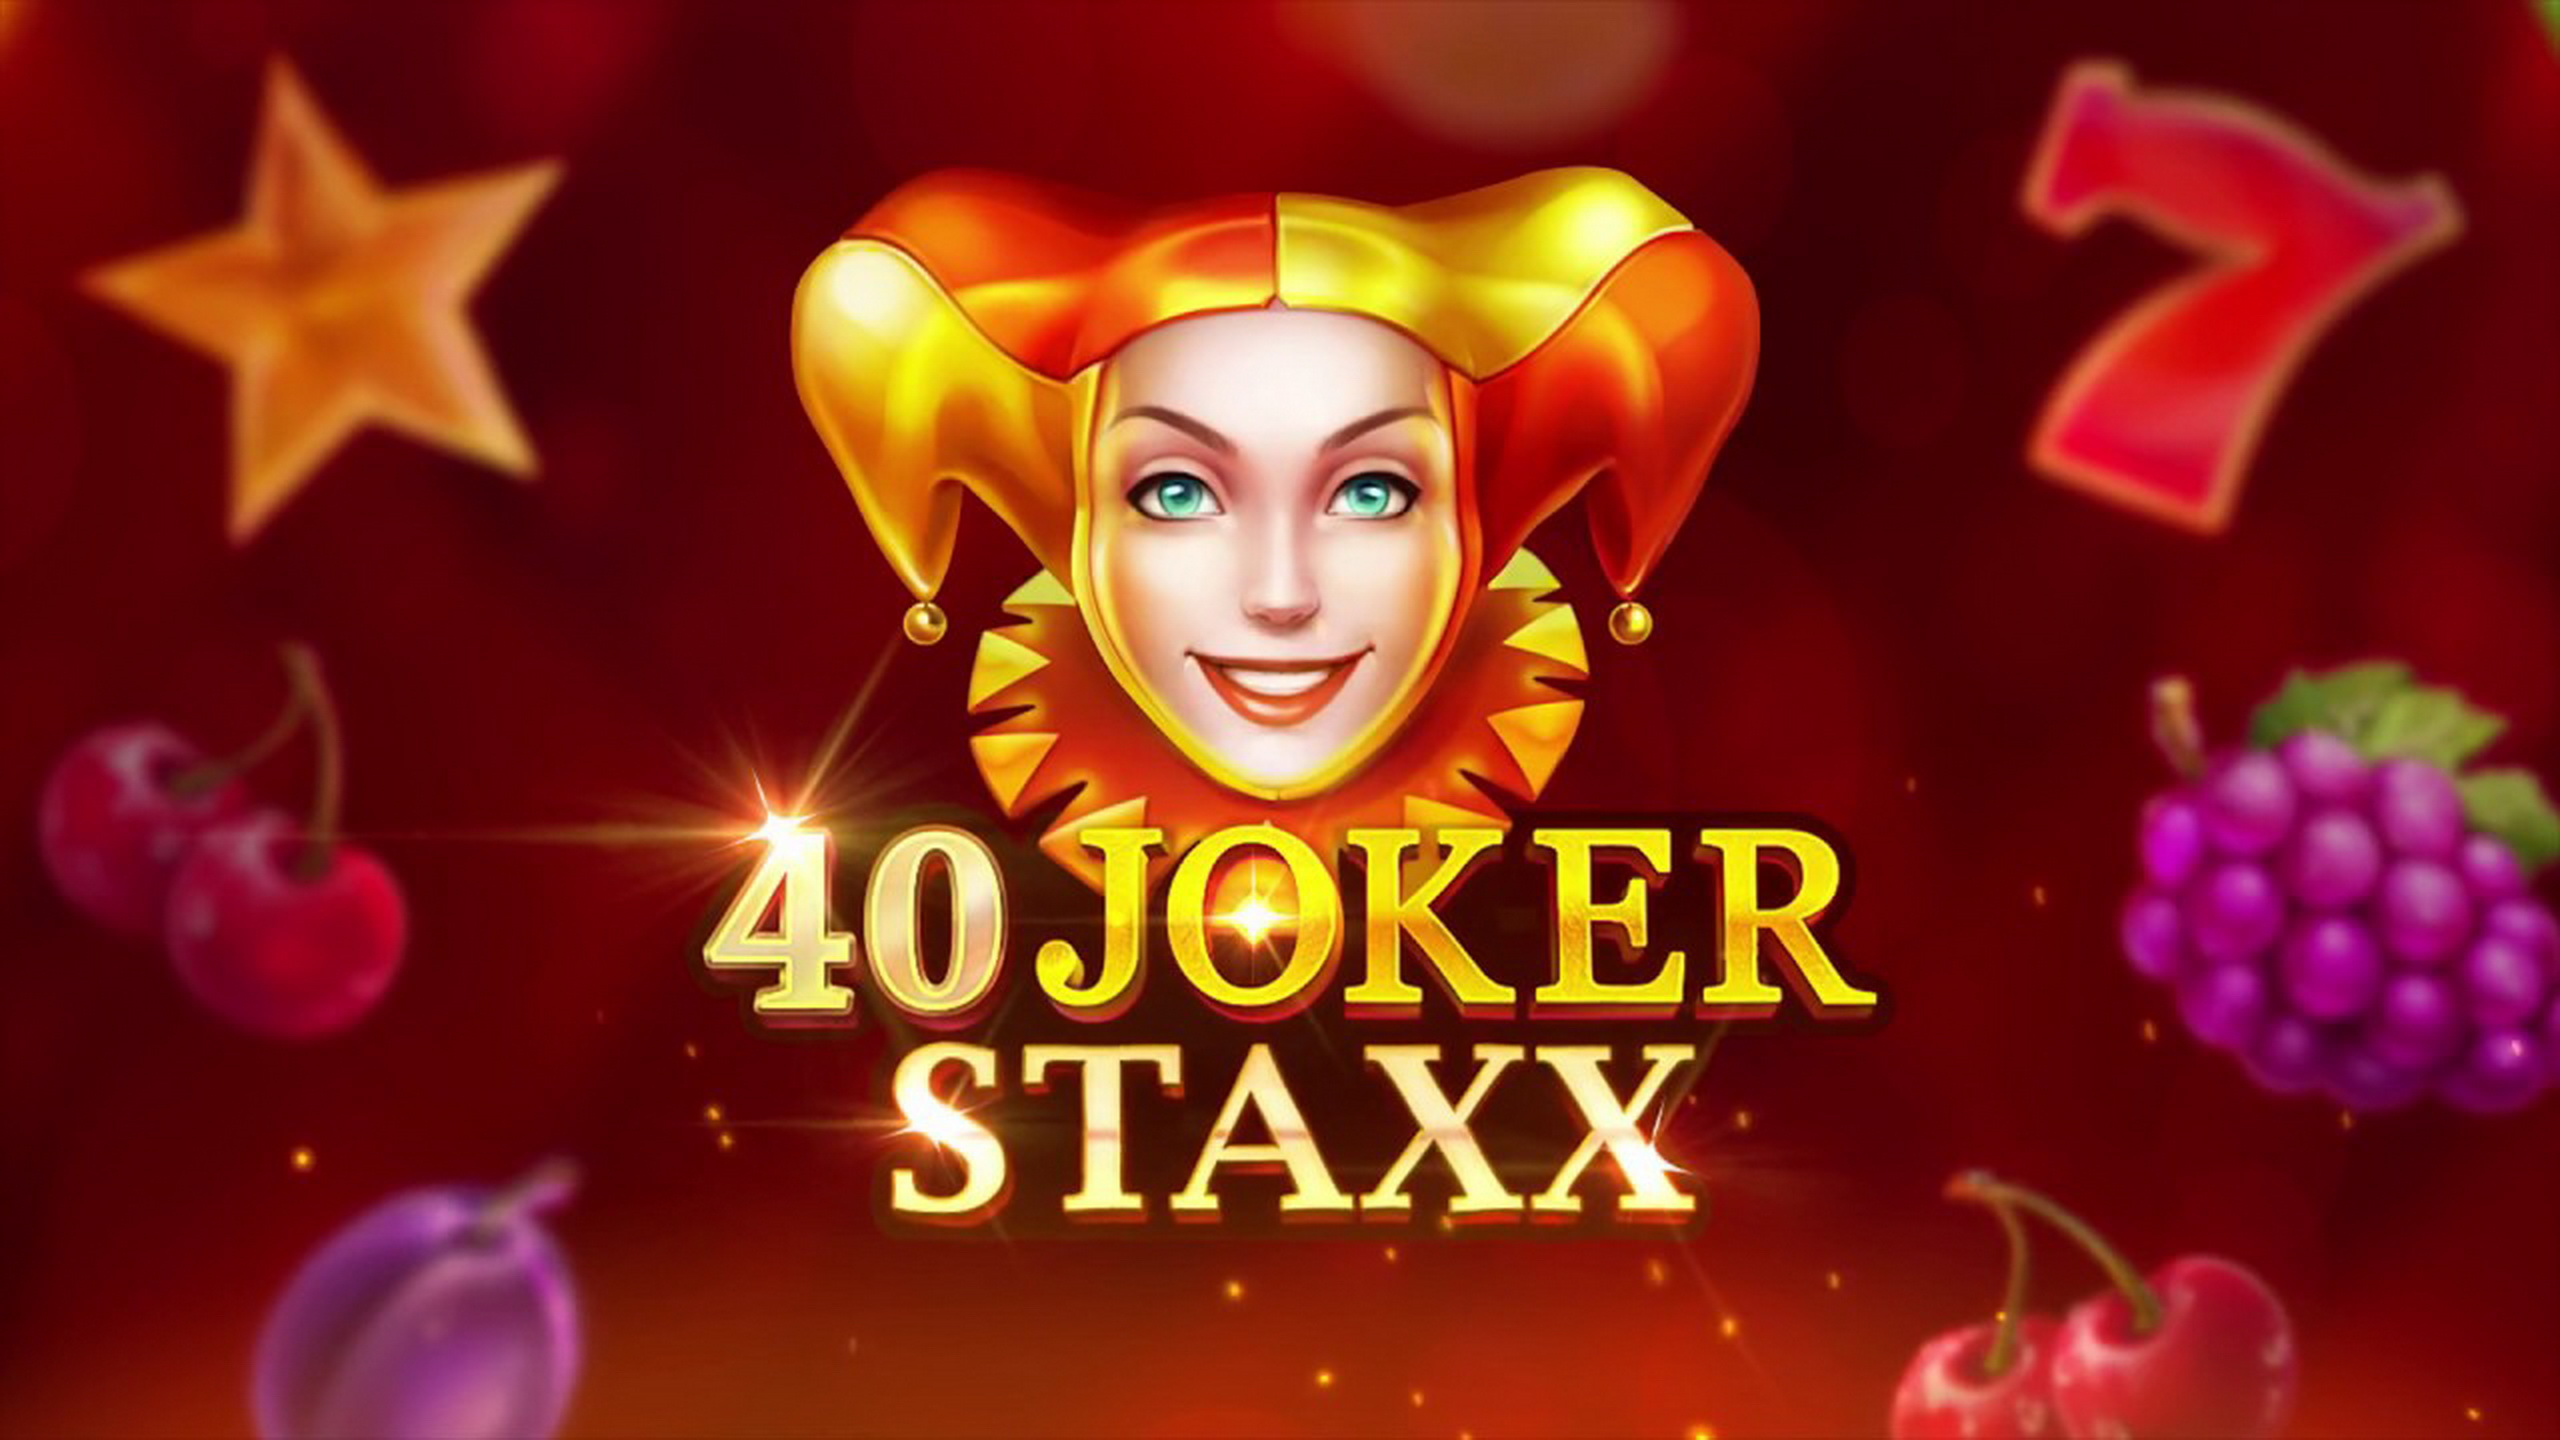 The 40 Joker Staxx: 40 lines Online Slot Demo Game by Playson